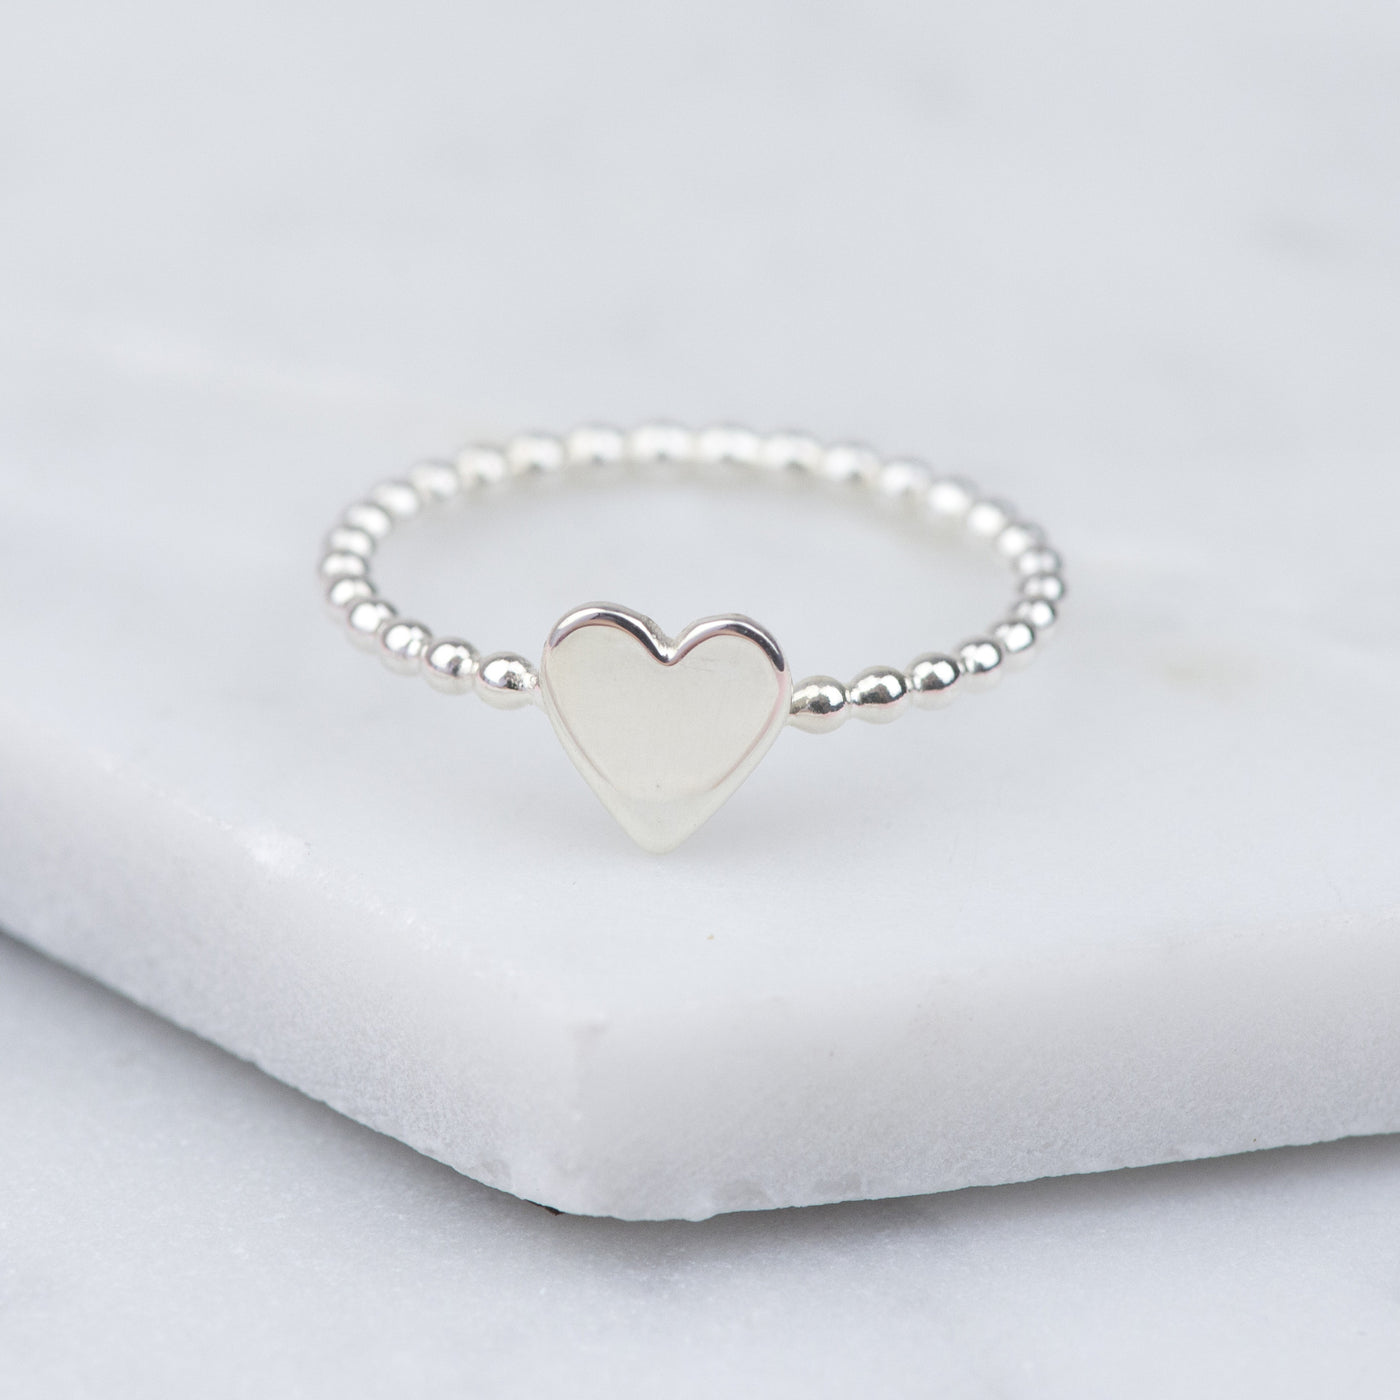 JOY - HANDMADE STERLING SILVER HEART RING